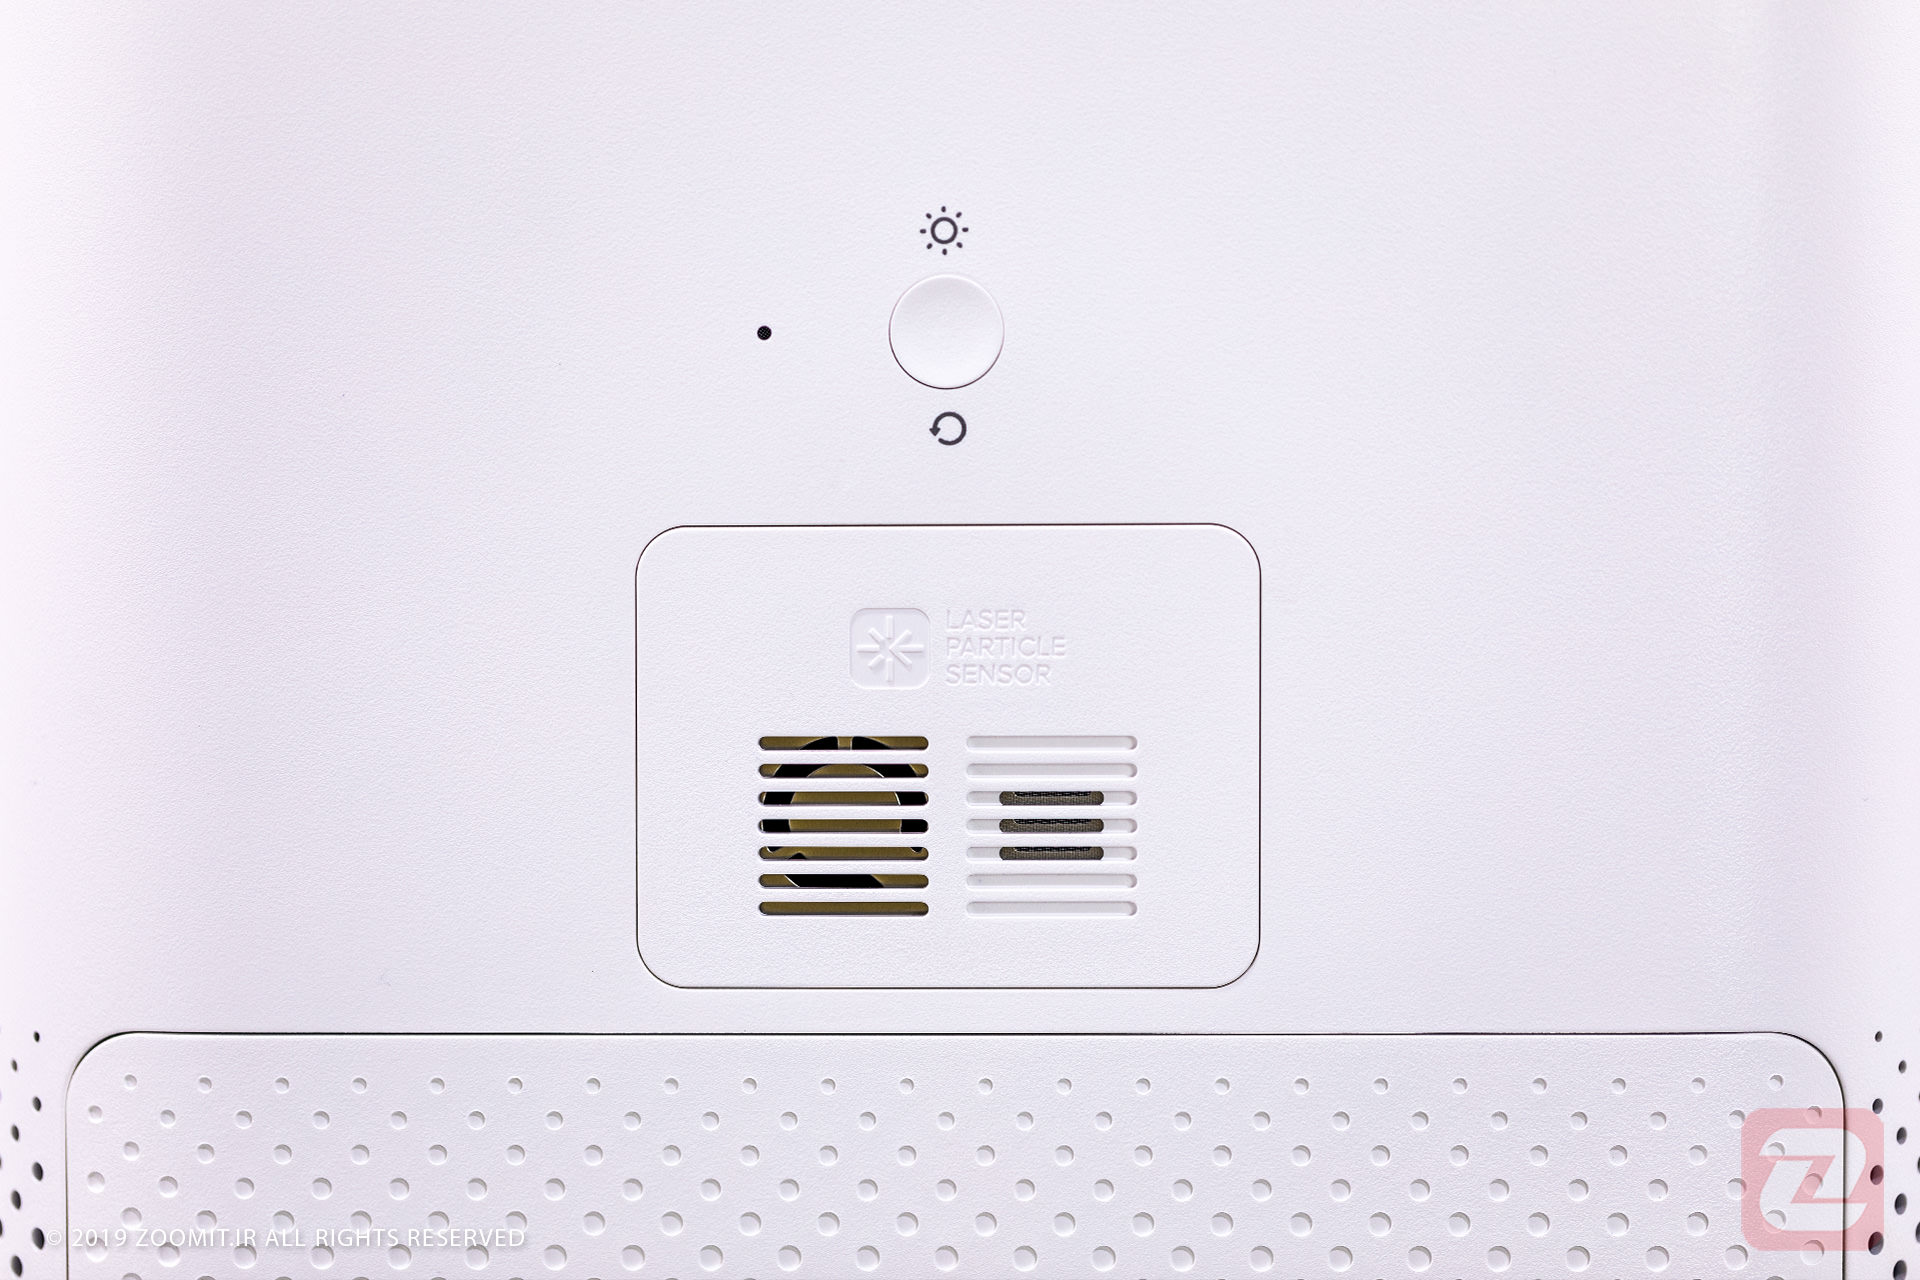 تصفیه هوا شیائومی / Xiaomi Air purifier 2s